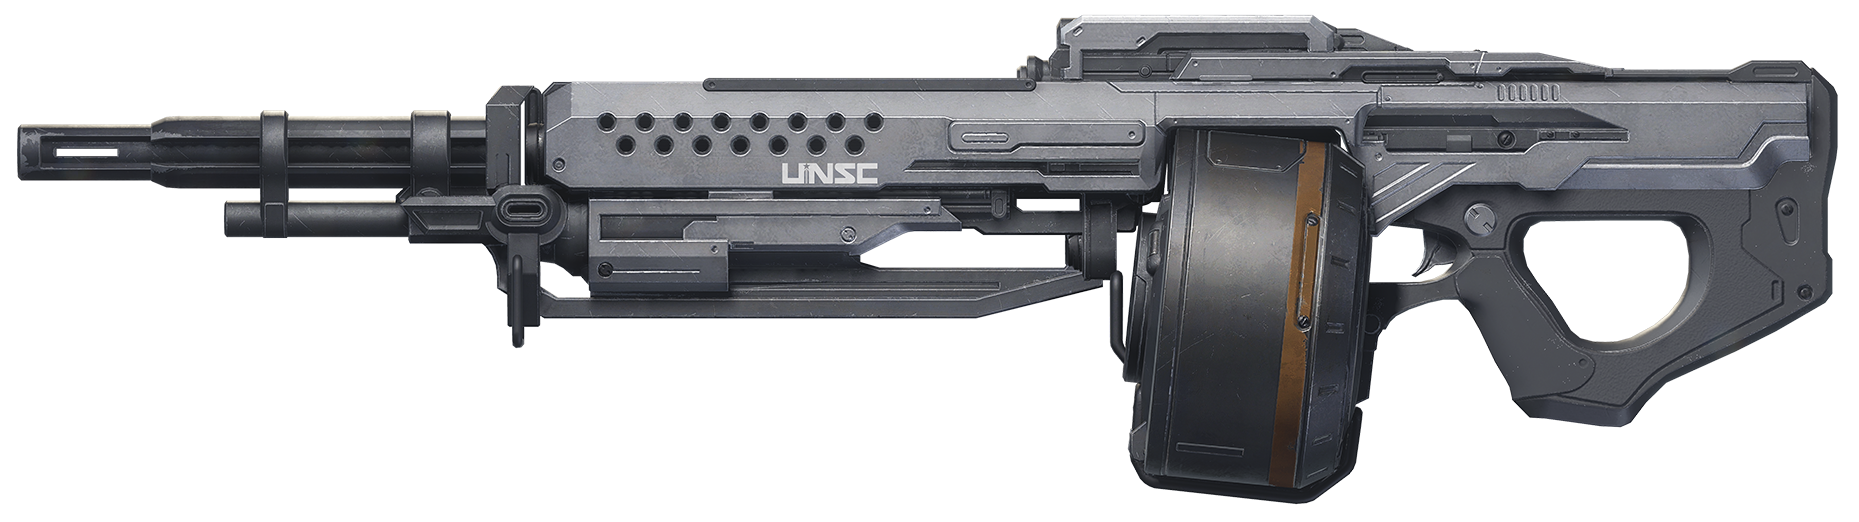 machine gun halo